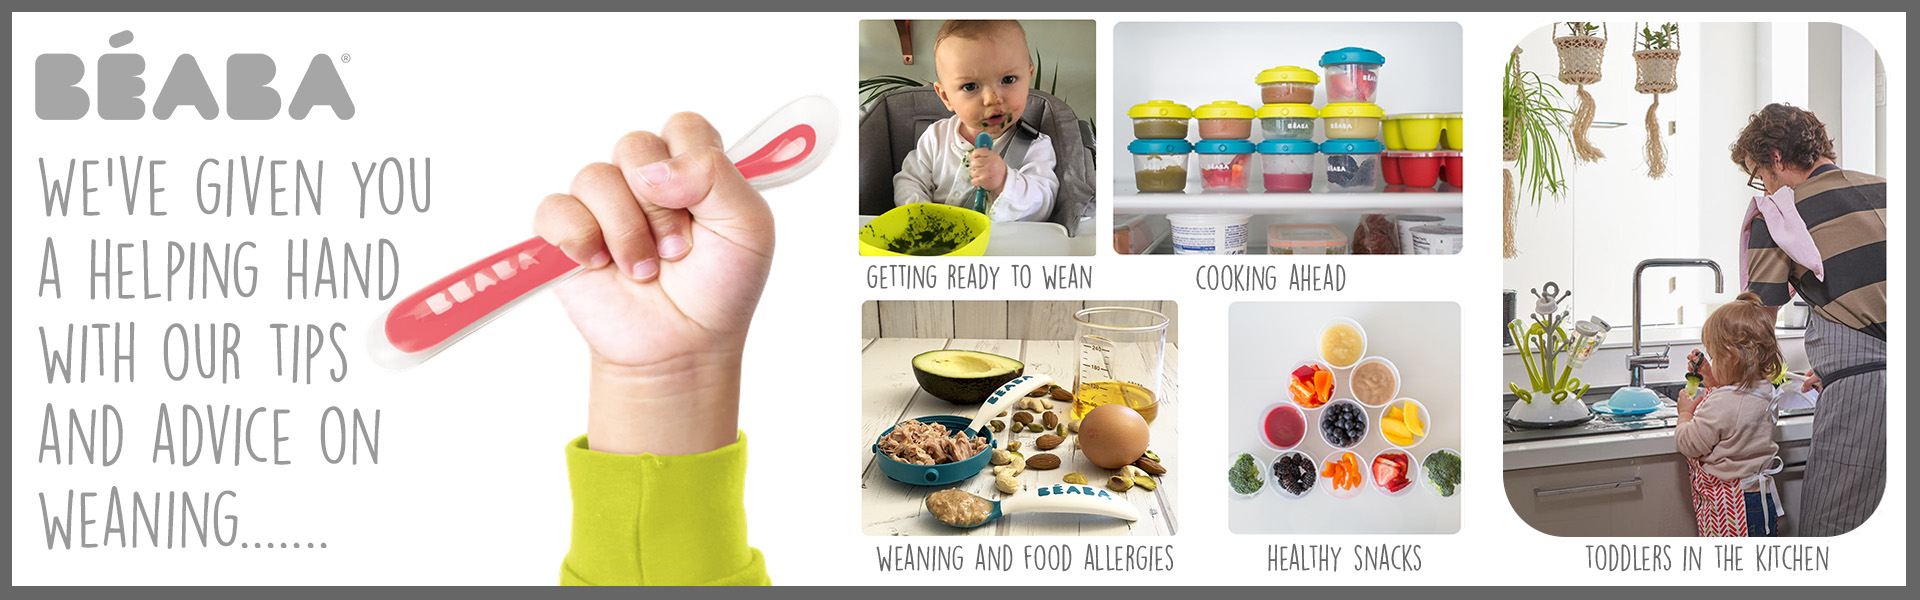 Beaba weaning tips and advice